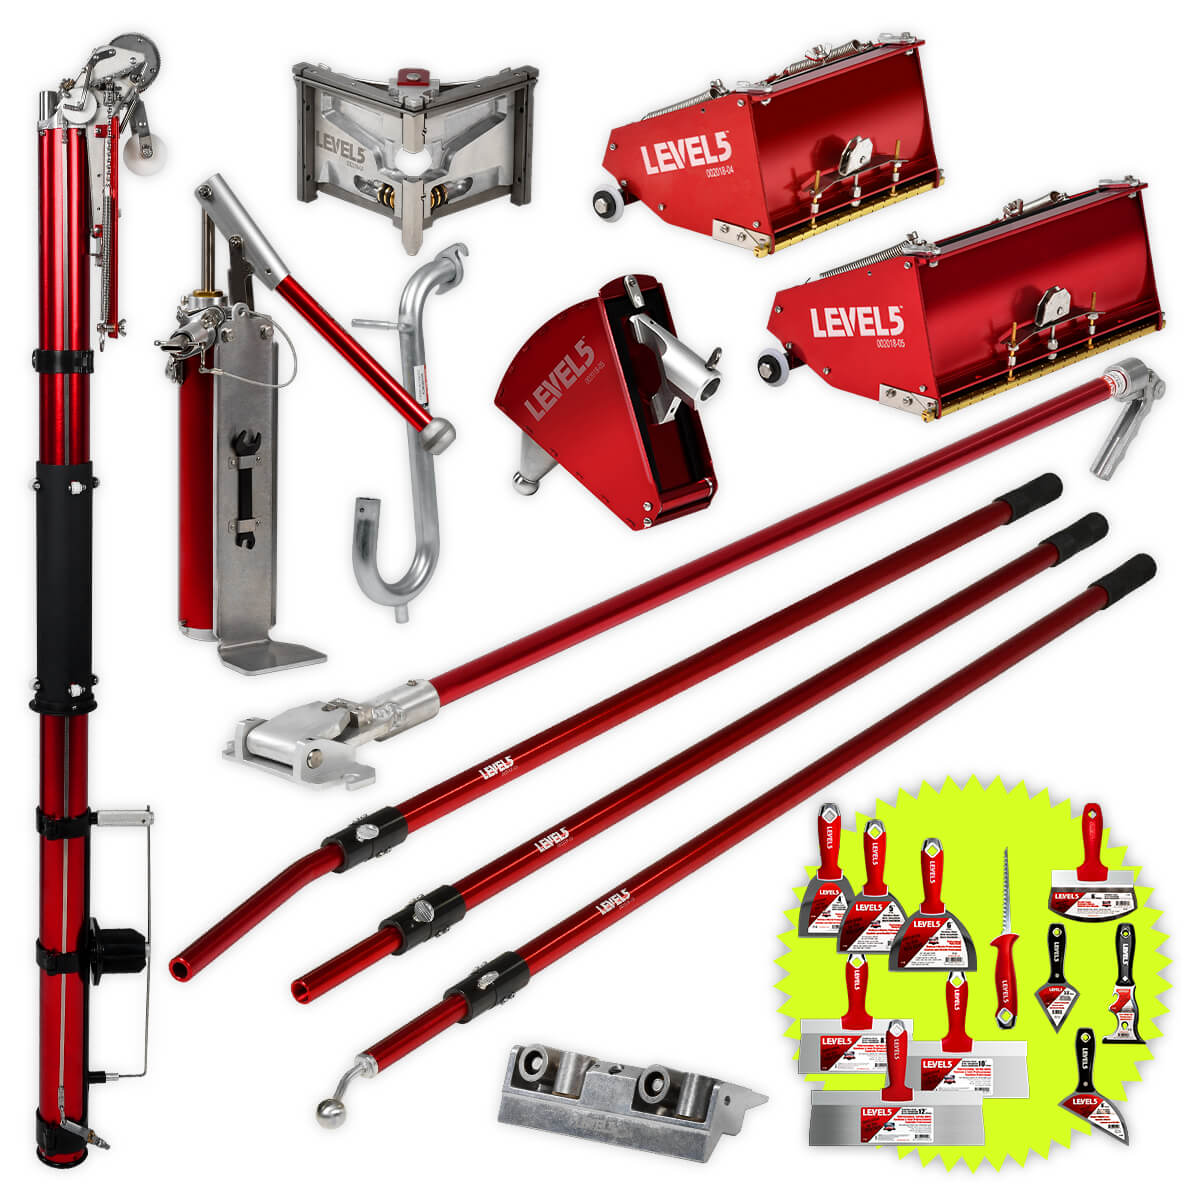 Drywall Taping Tool Set